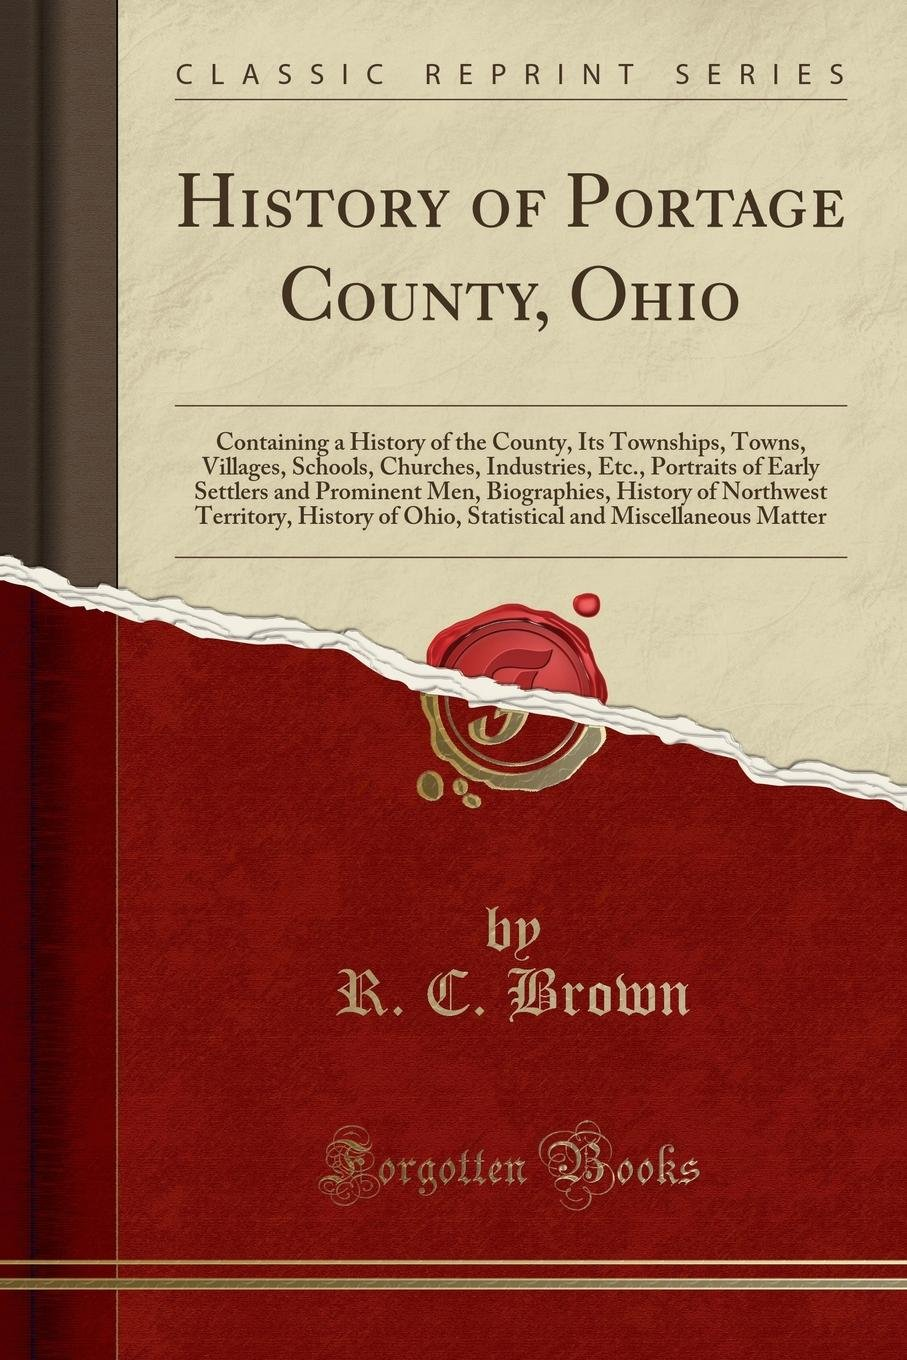 History of Portage County, Ohio: Containing a History of the County, Its Townships, Towns, Villages, Schools, Churches, Industries, Etc., Portraits of ... Territory, History of Ohio, Statisti PDF